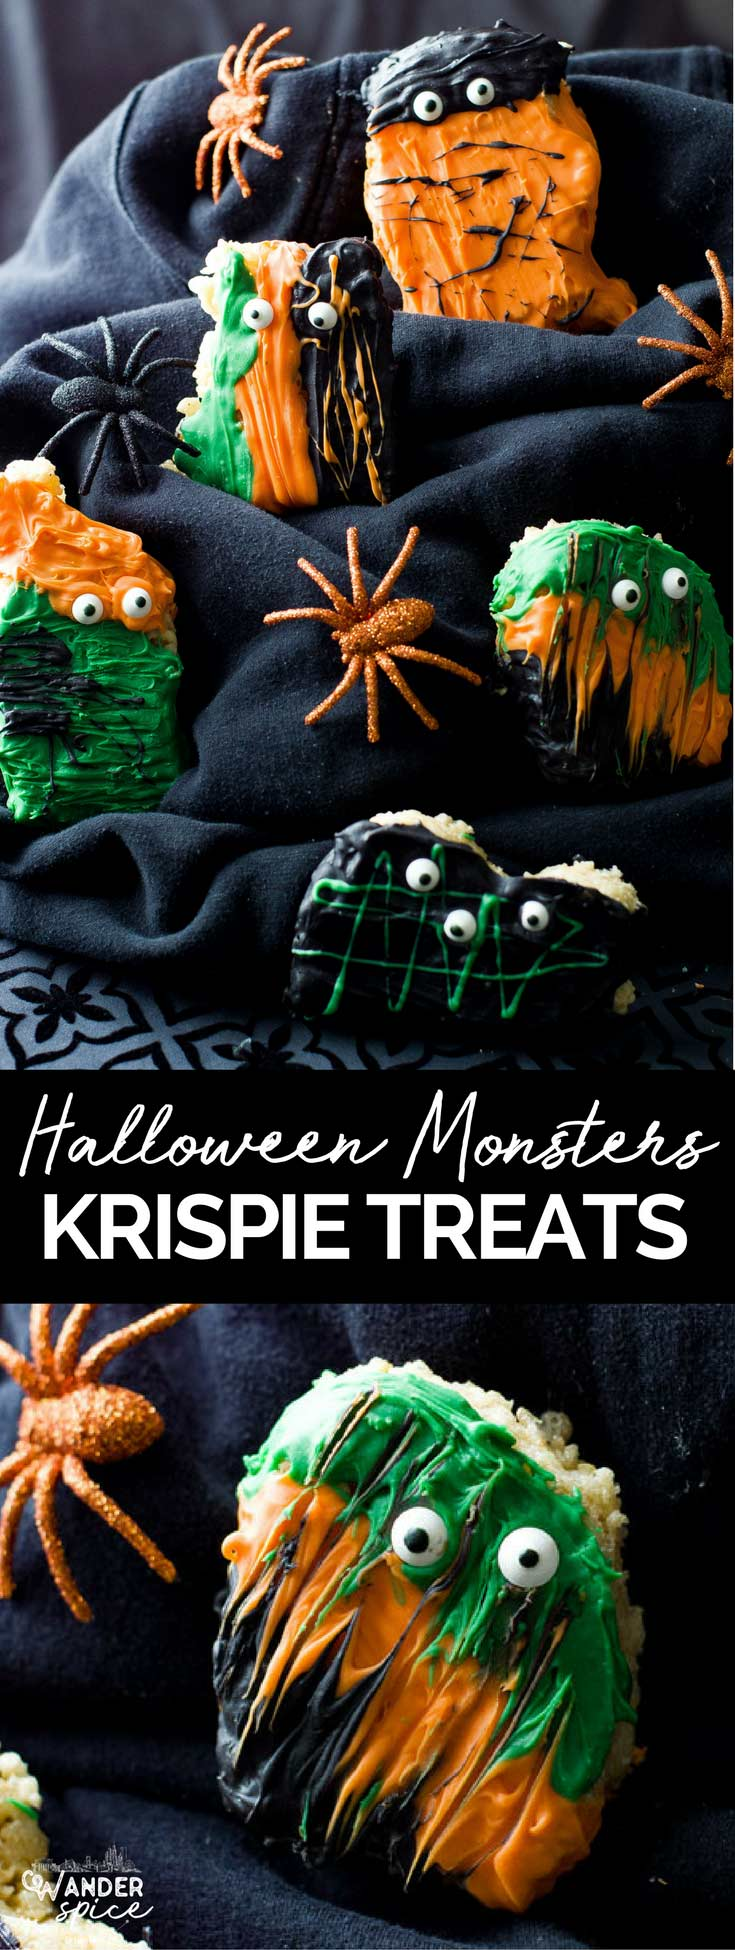 Rice Krispie Treats Halloween Monsters Recipe. Tasty and decorated krispie treats dipped in Halloween themed candy melts. #halloween, #rice krispie #kids #desserts